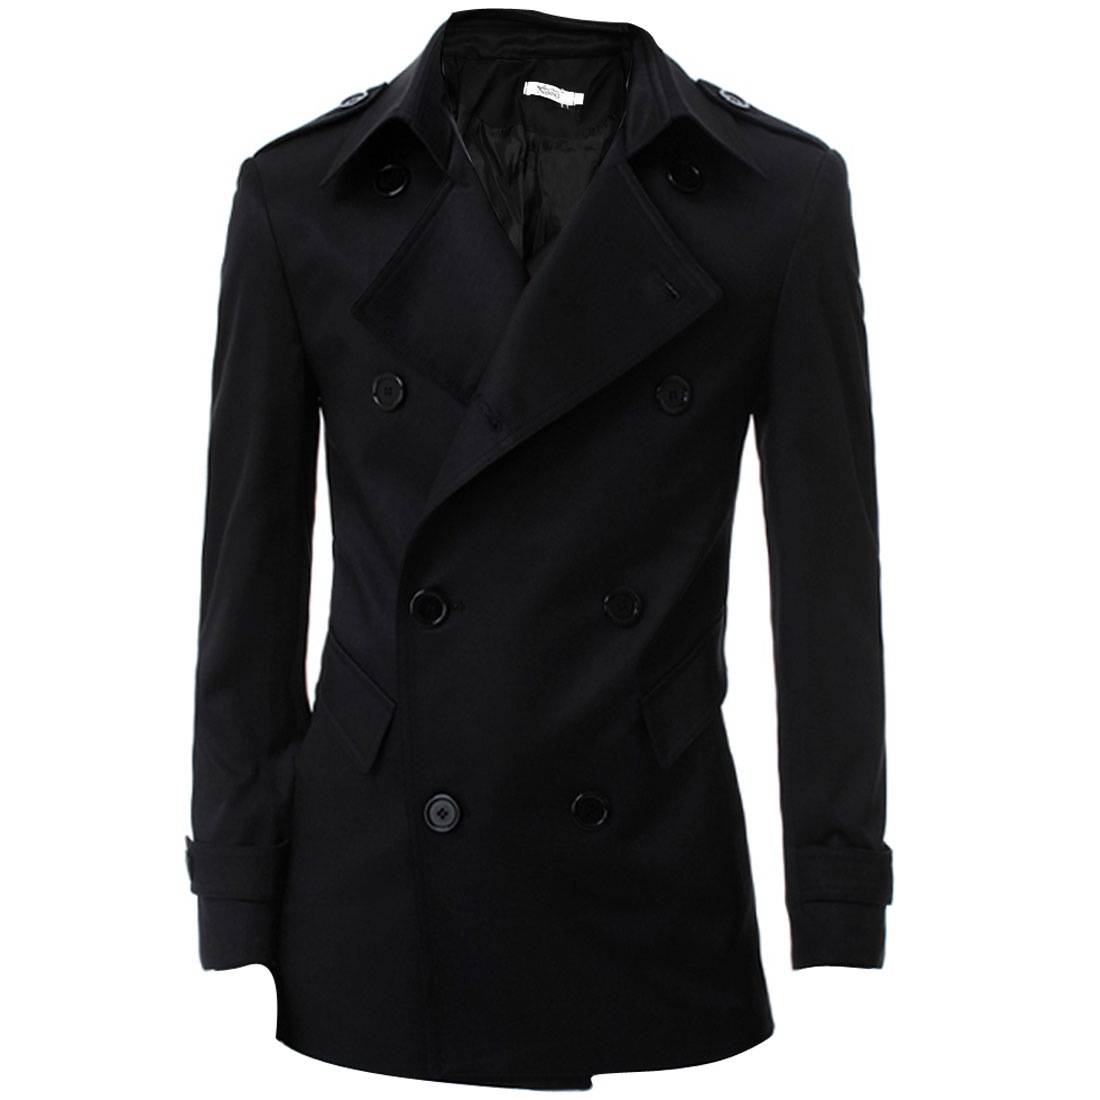 Man Stylish Double-Breasted Front Button-Tab Epaulets Black Trench Coat M